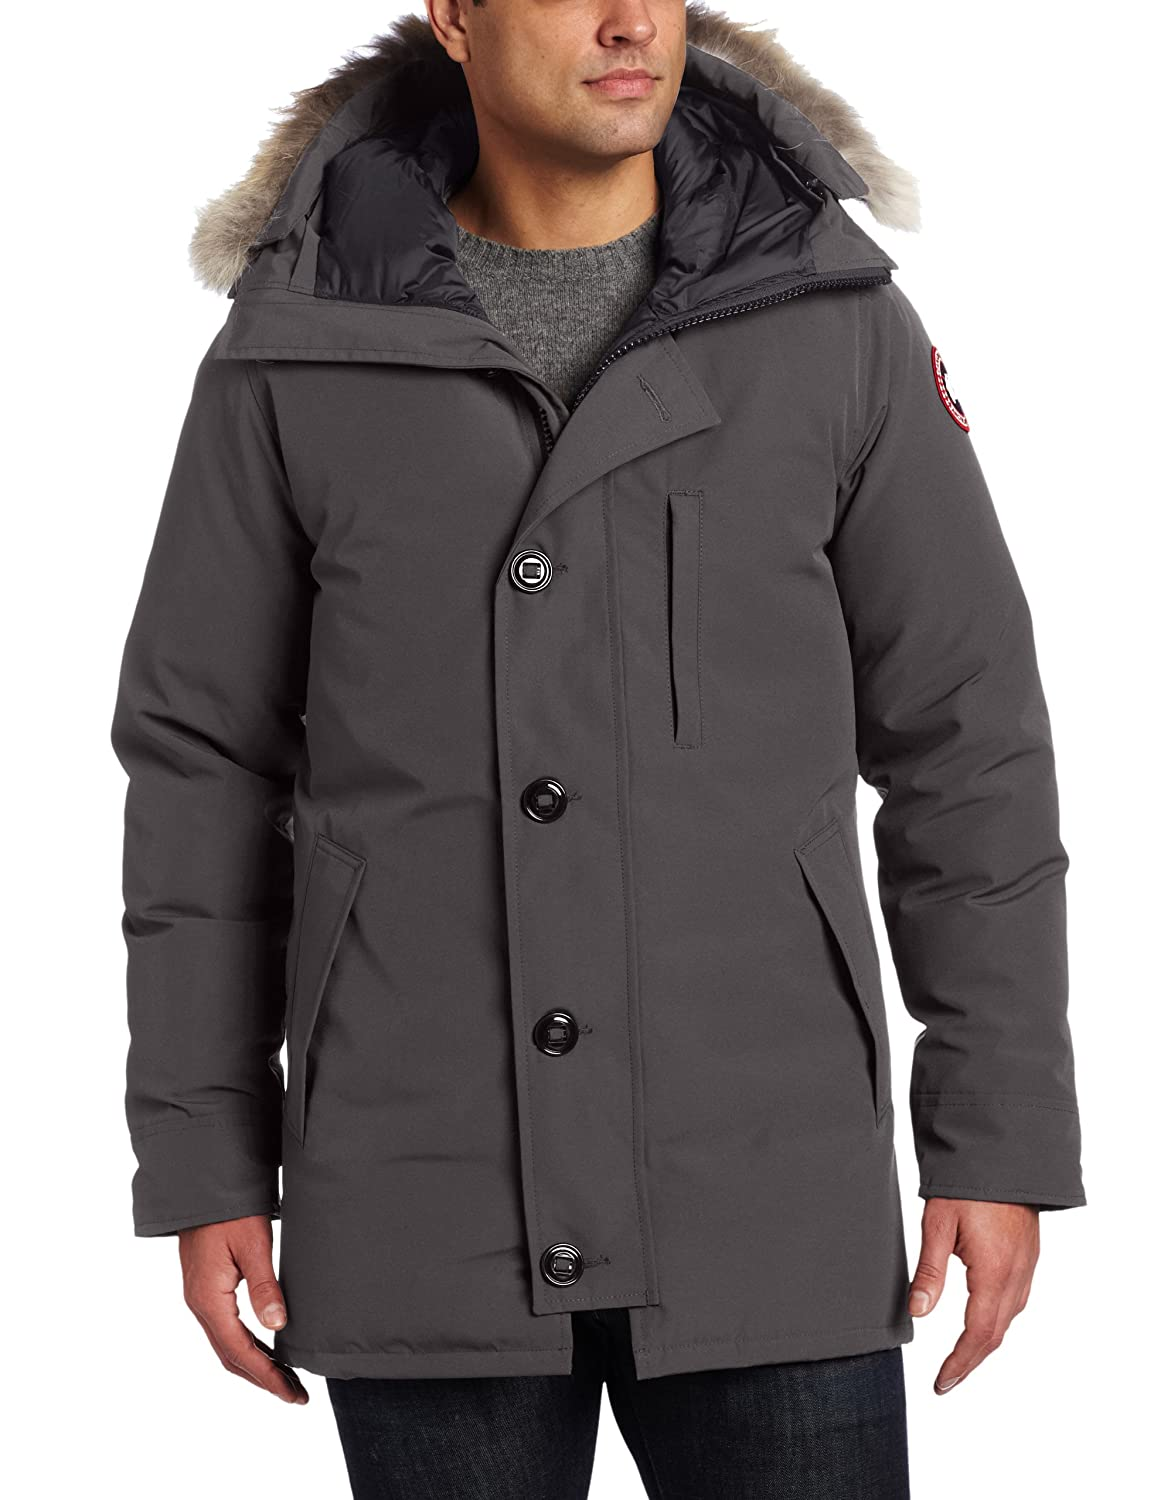 Canada Goose victoria parka sale official - Amazon.com: Canada Goose Men's The Chateau Jacket: Sports & Outdoors